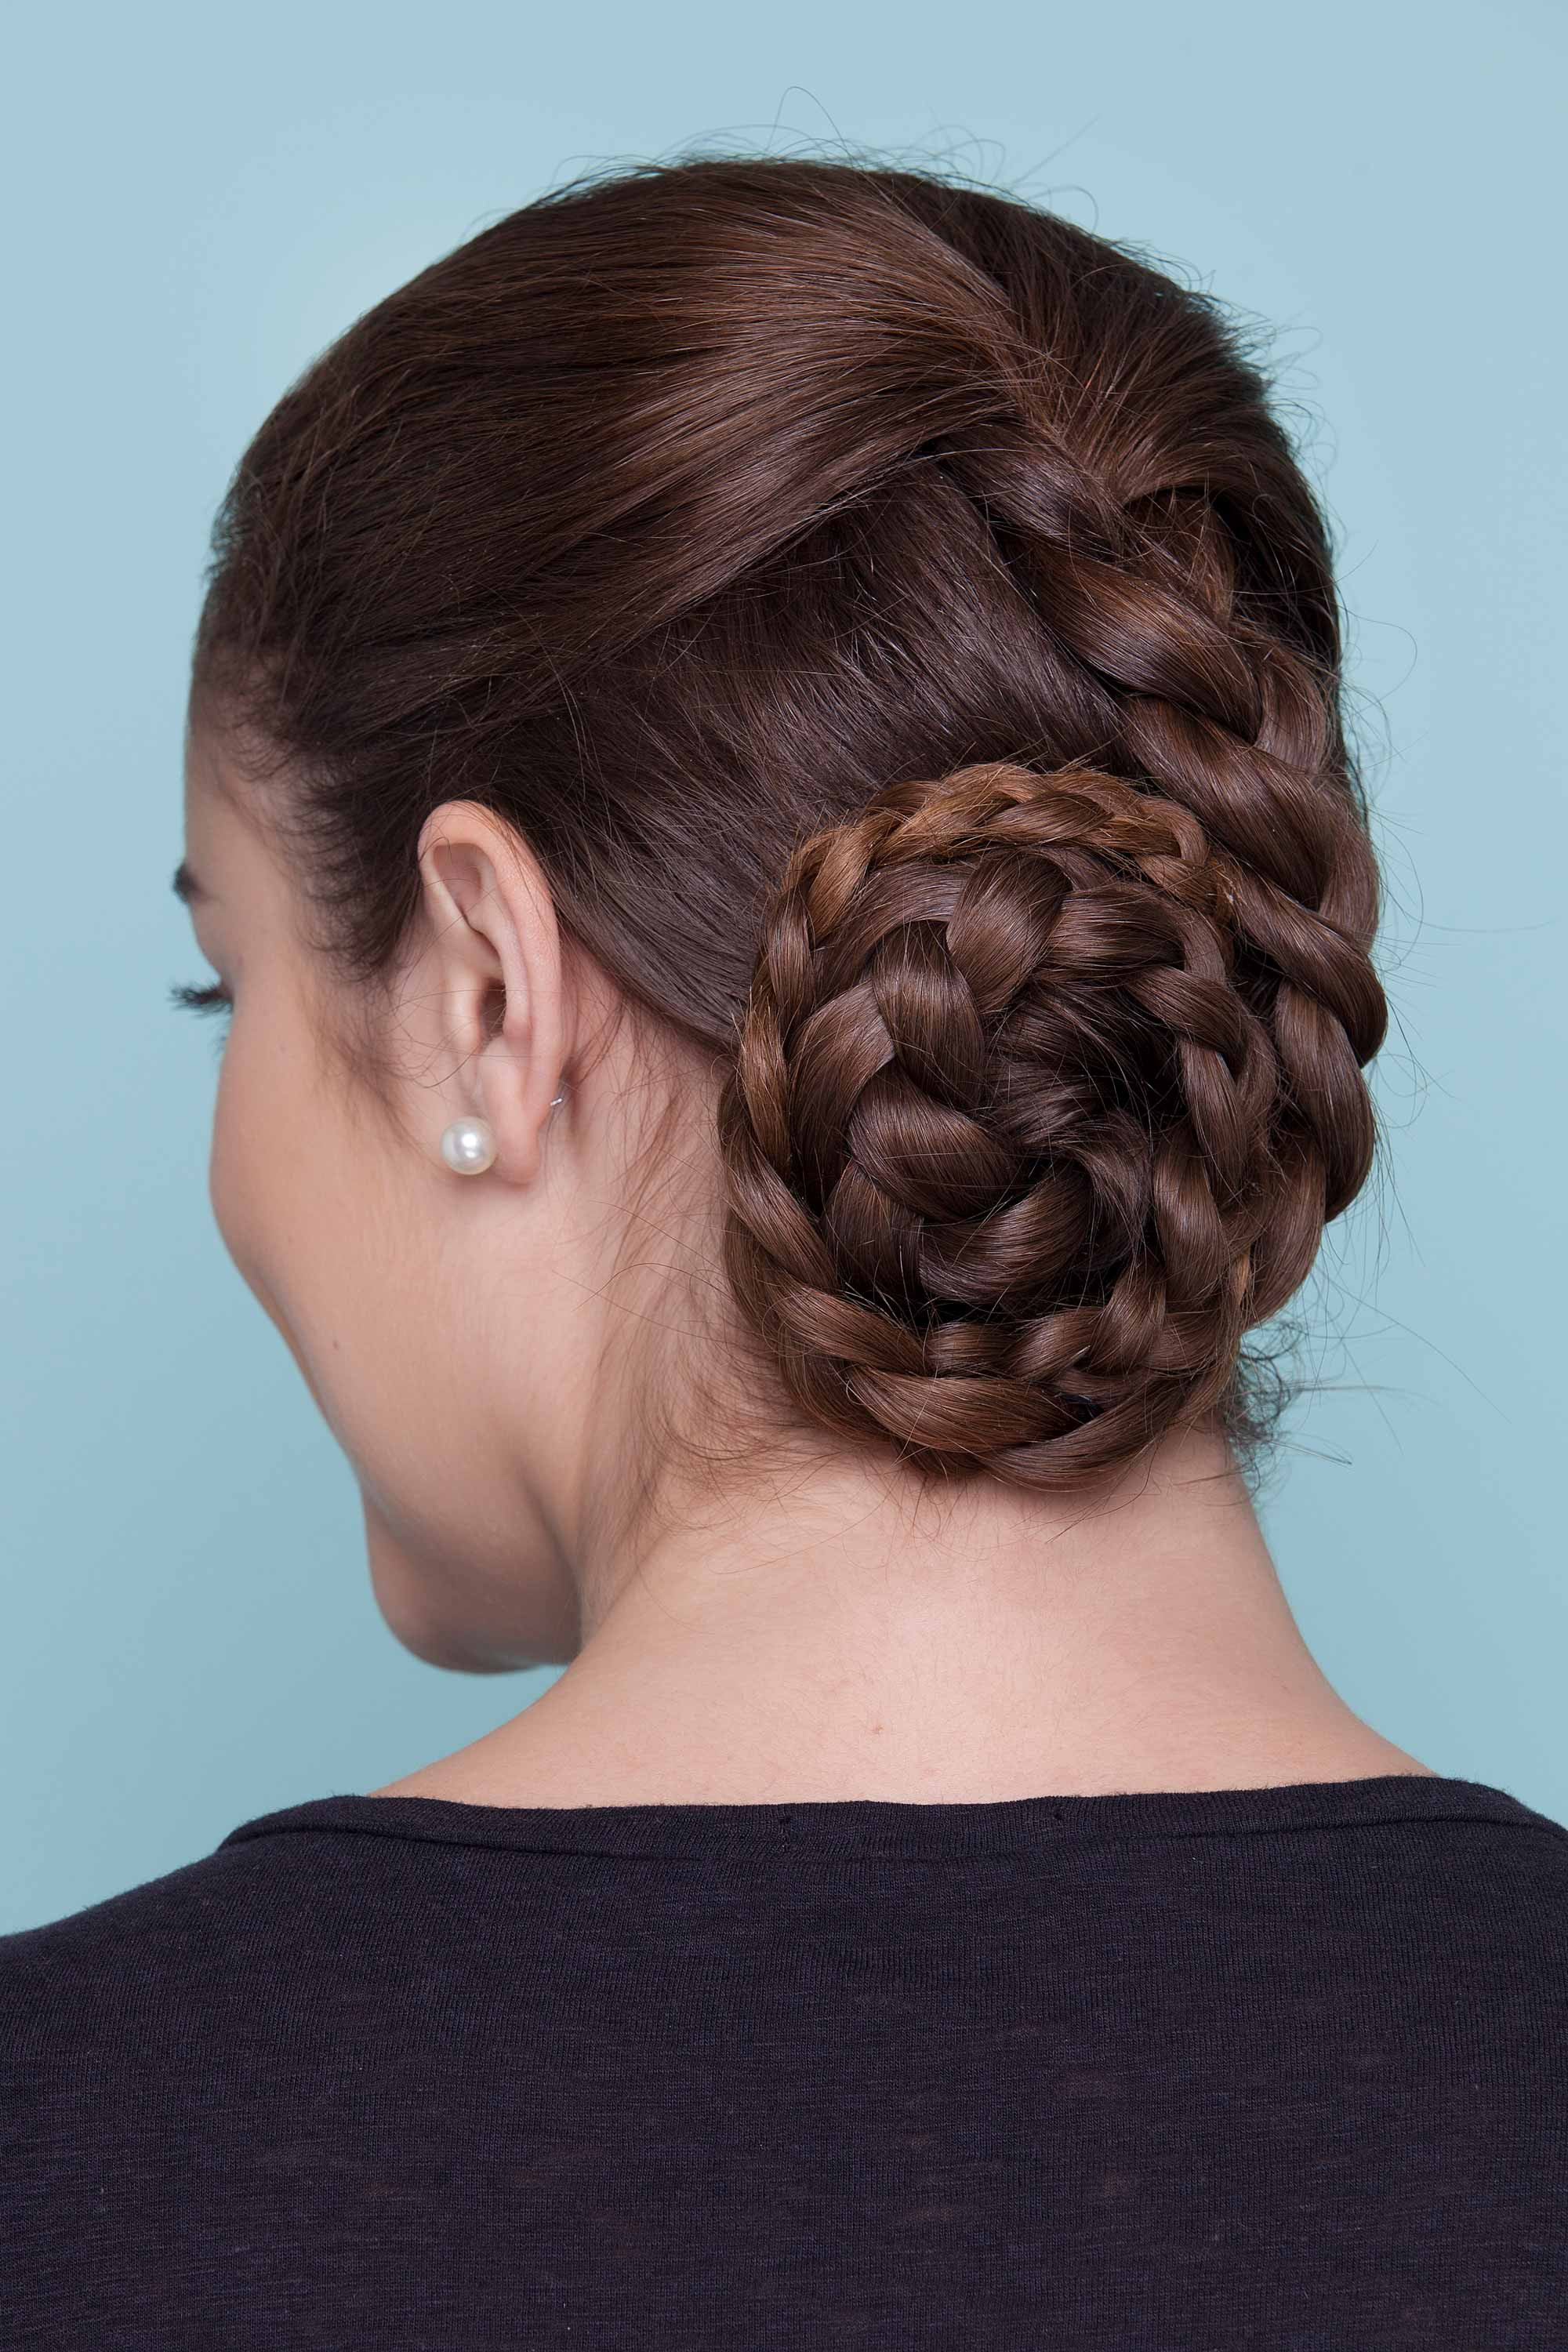 Double Braid Hairstyles  Double Braid Bun Tutorial How to Master this Hairstyle in